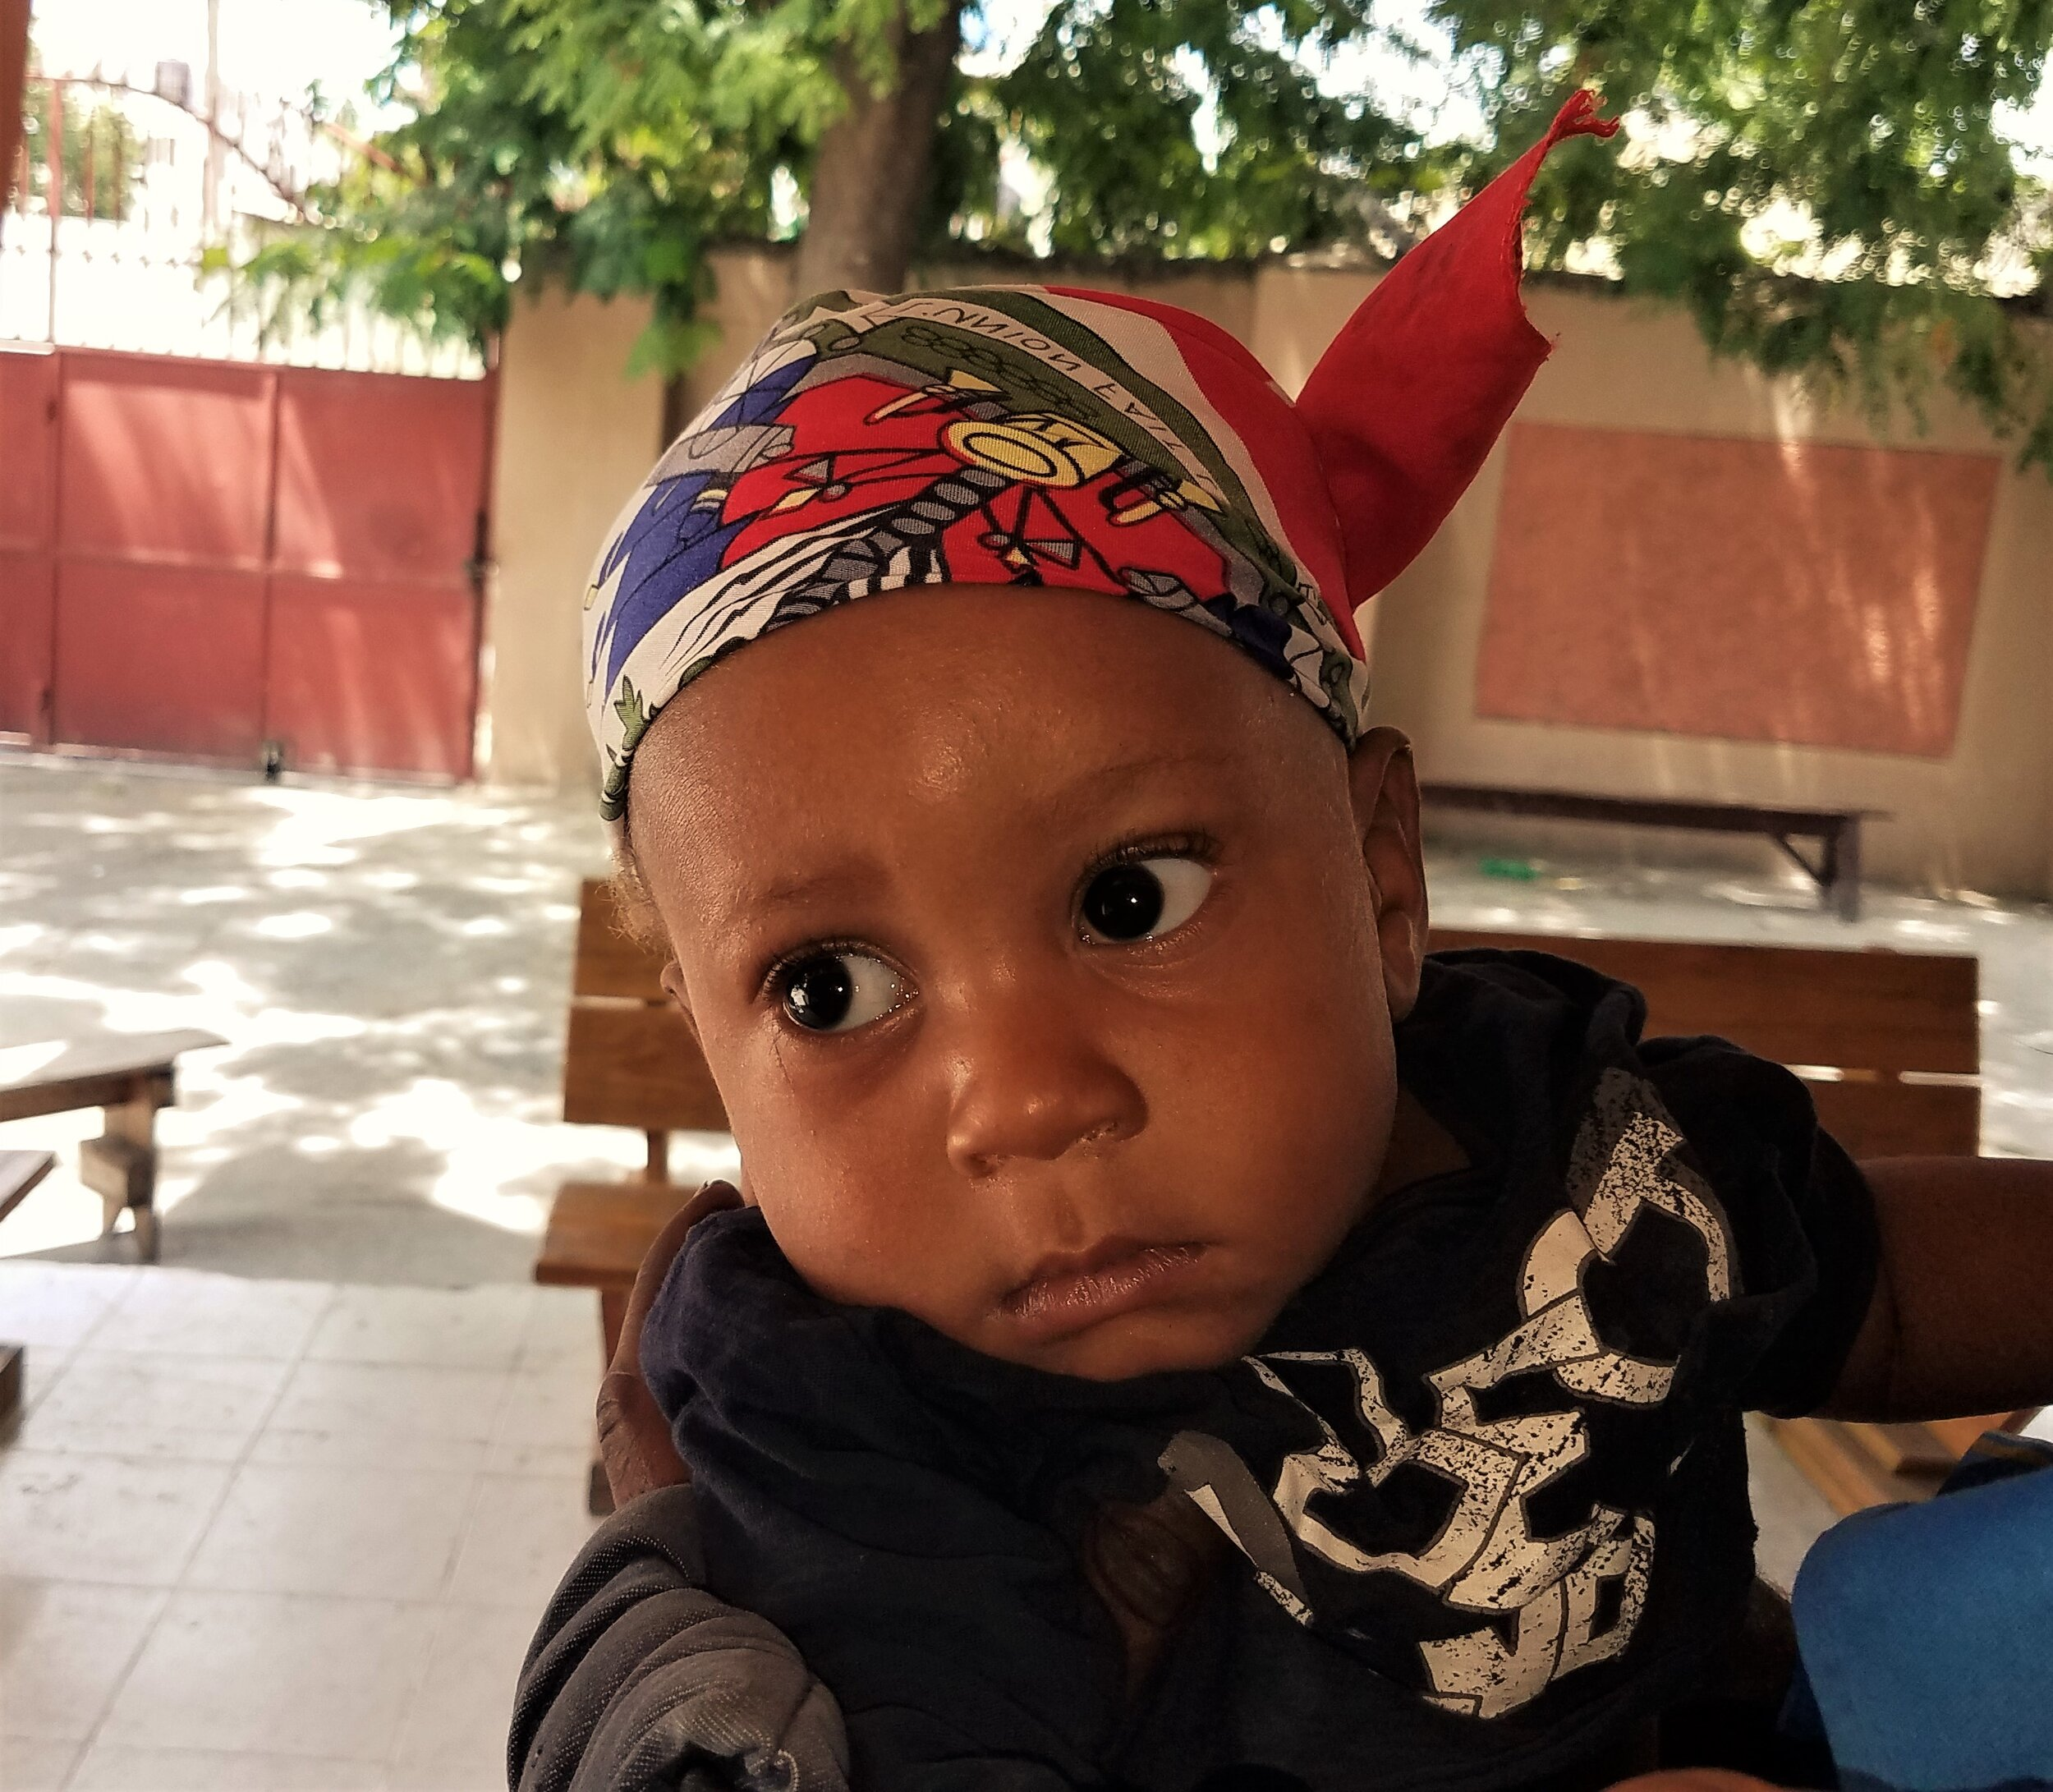 This little man is still showing his Haiti pride with his Haiti flag doo rag as he is leaving malnutrition clinic.